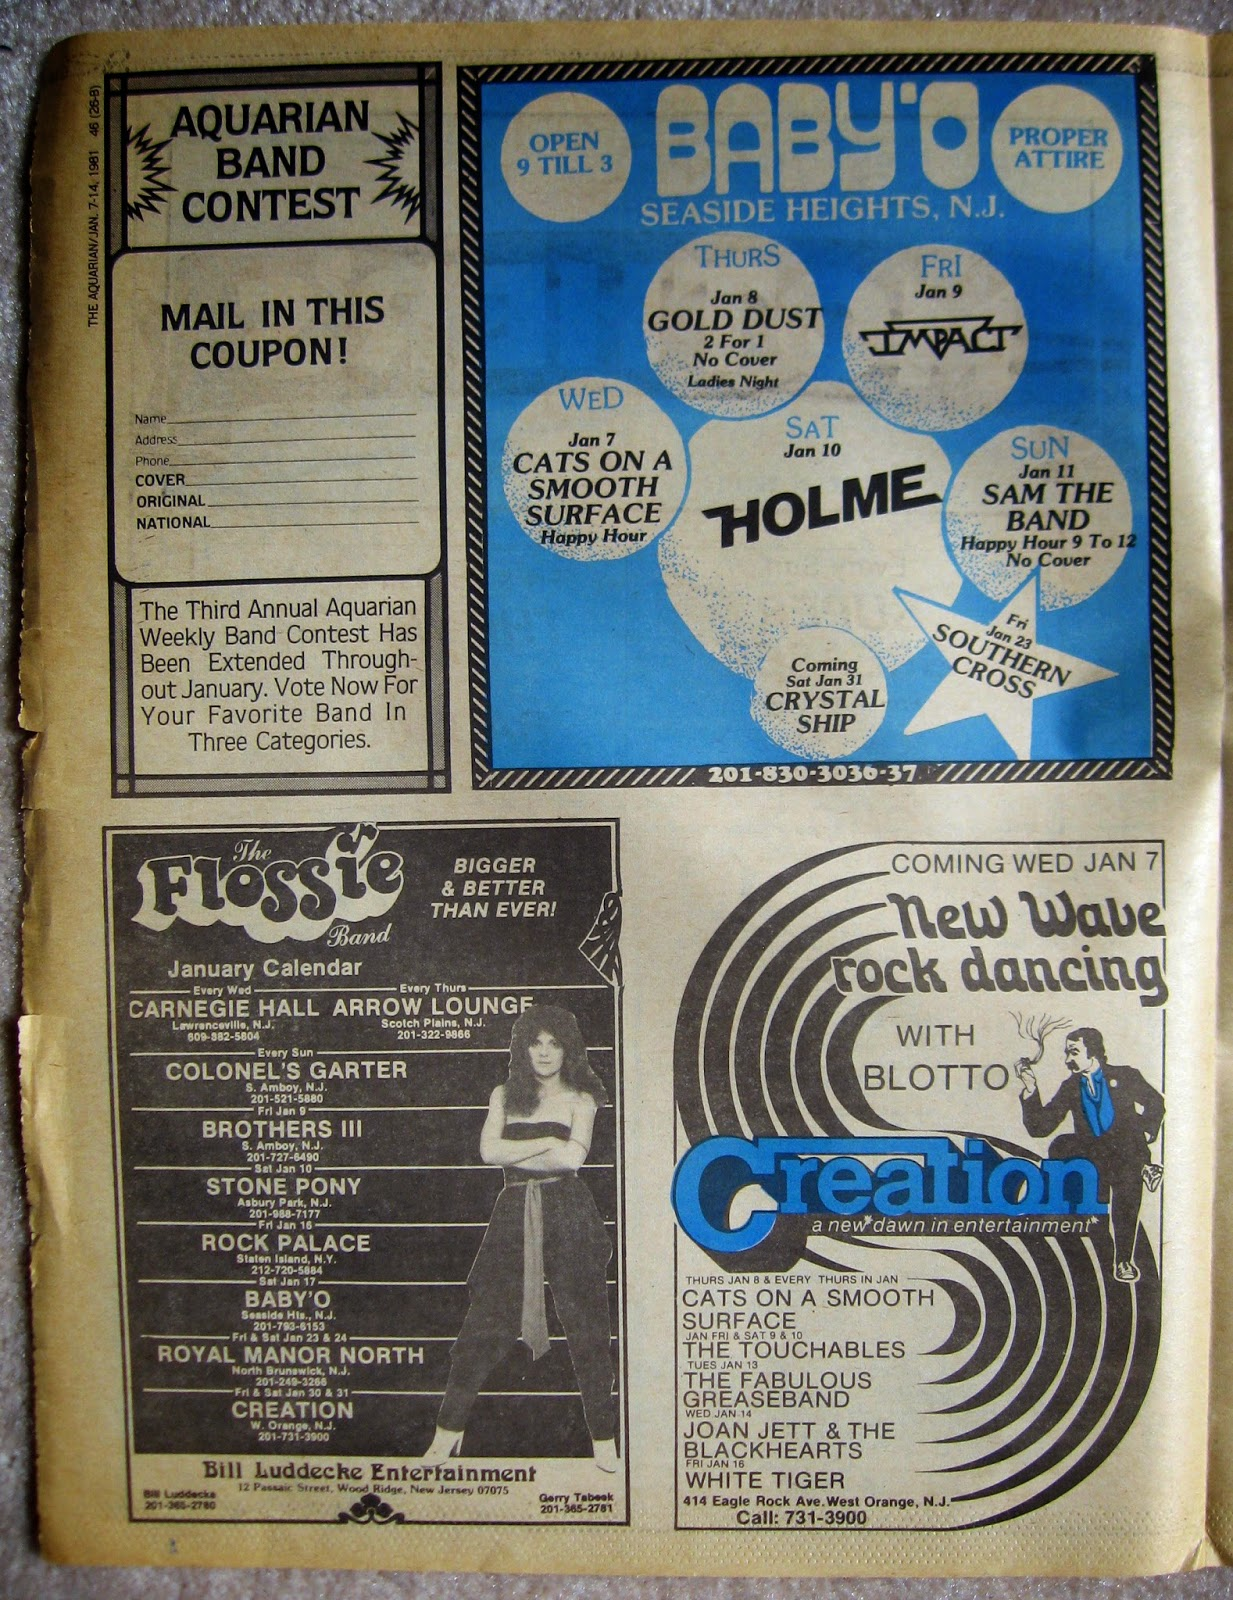 Baby'O - Creation band line ups - The Flossie Band club line up January 1981